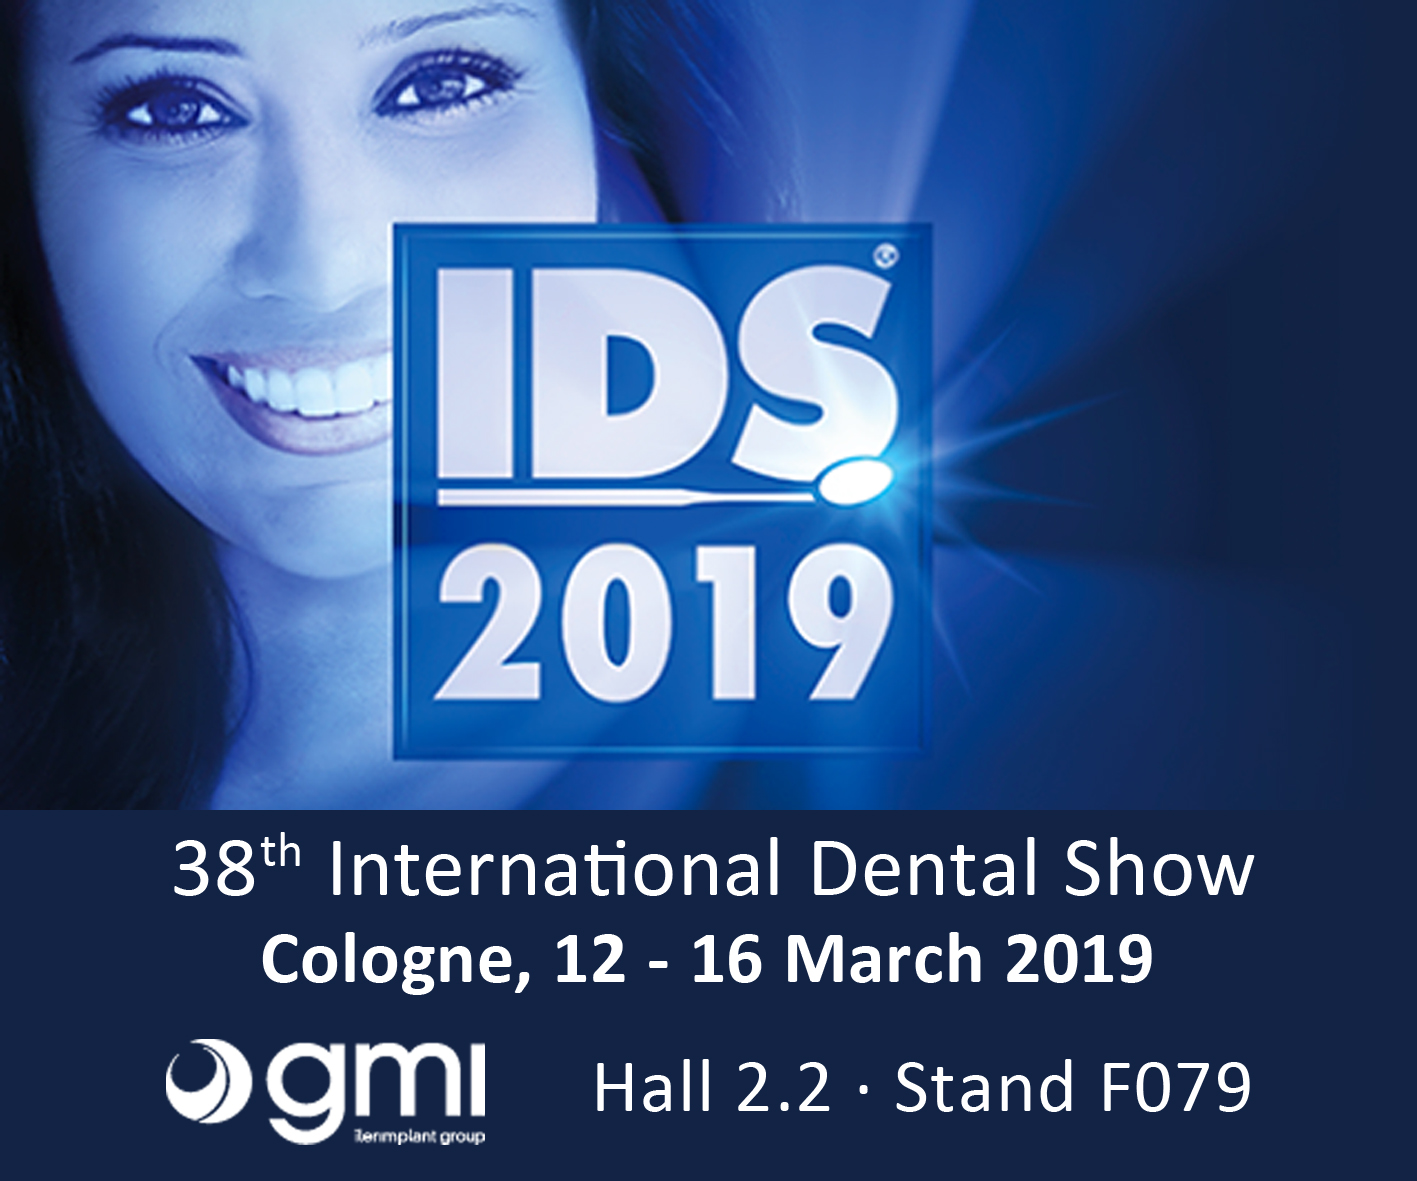 GMI will be present at IDS 2019 - Cologne